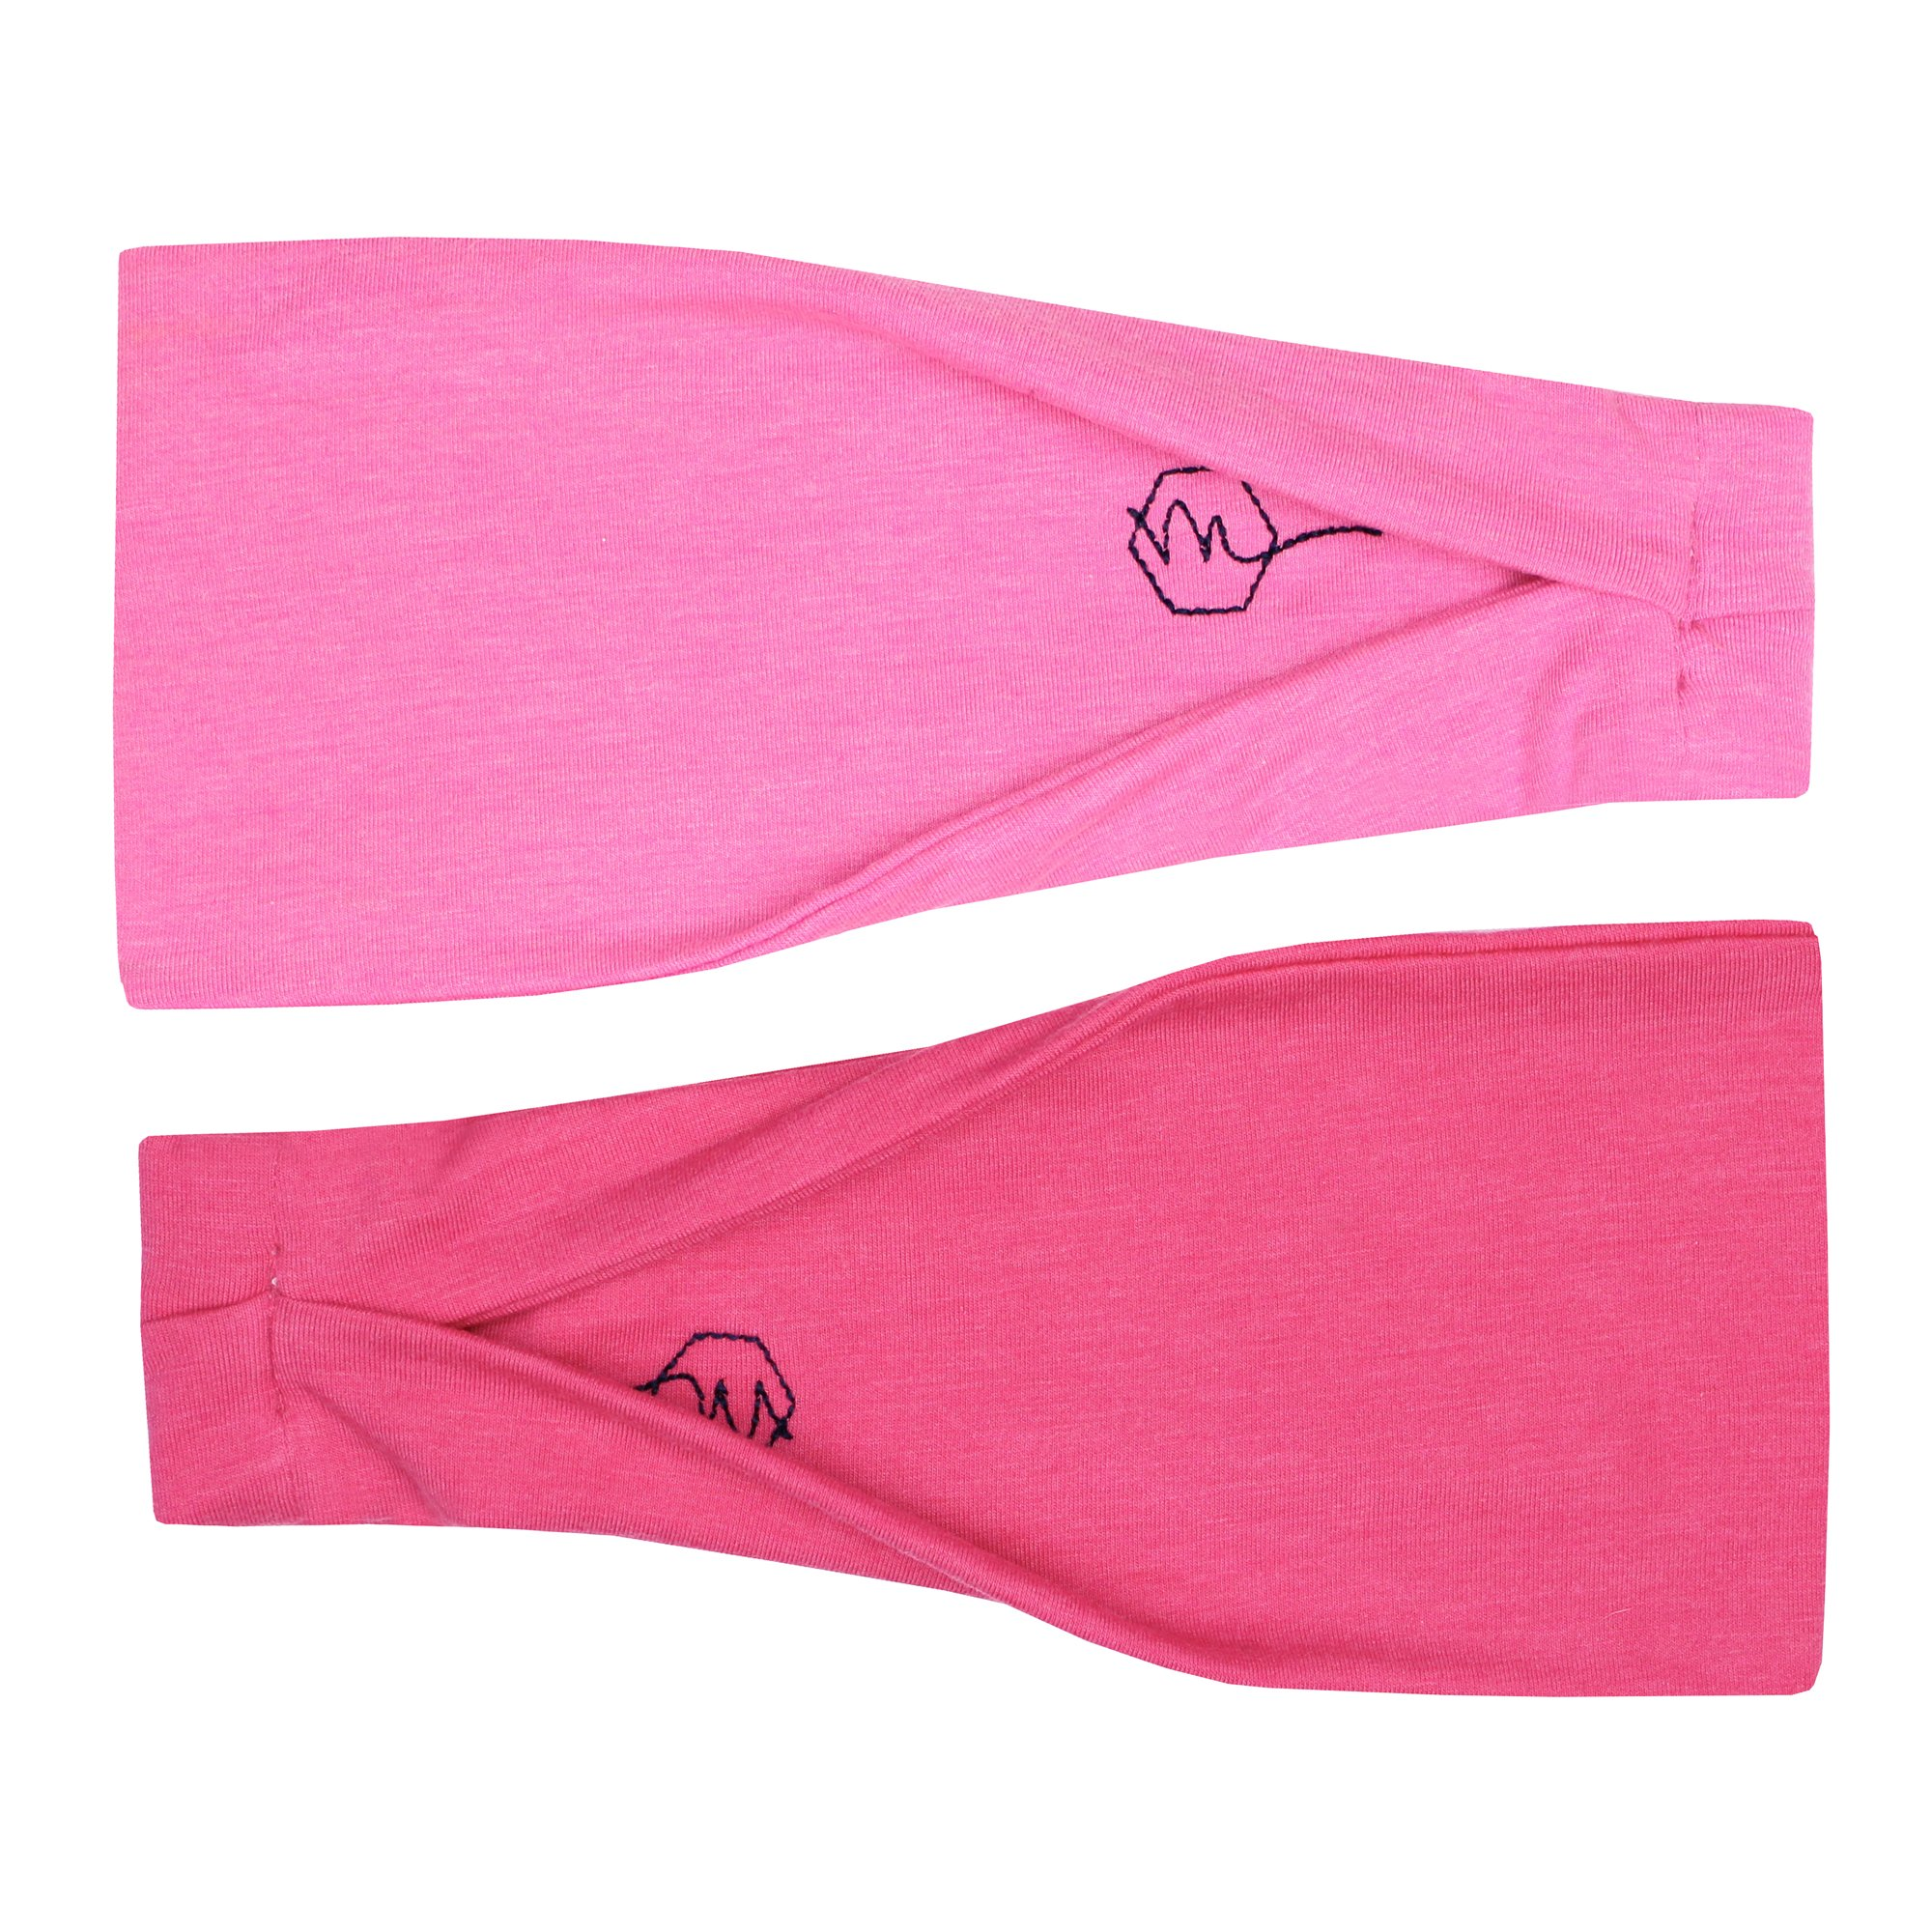 Maven Thread Women's Headband Yoga Running Exercise Sports Workout Athletic Gym Wide Sweat Wicking Stretchy No Slip 2 Pack Set Hot Pink SIREN by by Maven Thread (Image #1)